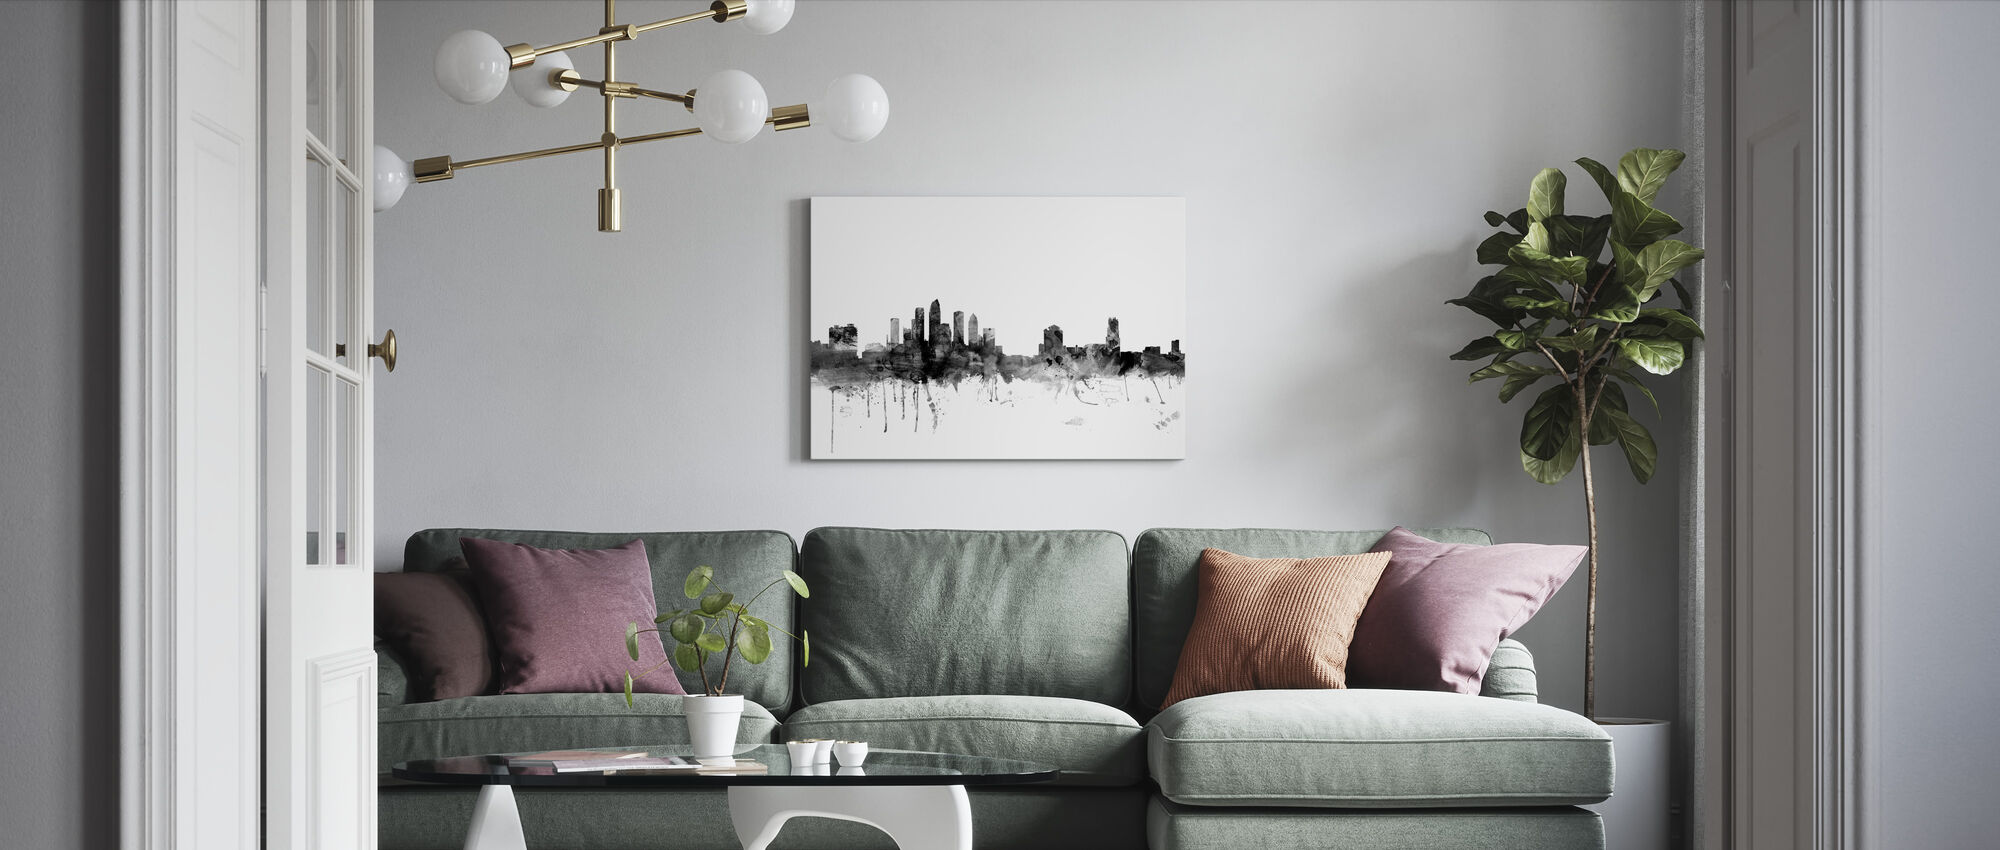 Tampa Florida Skyline Black - Canvas print - Living Room